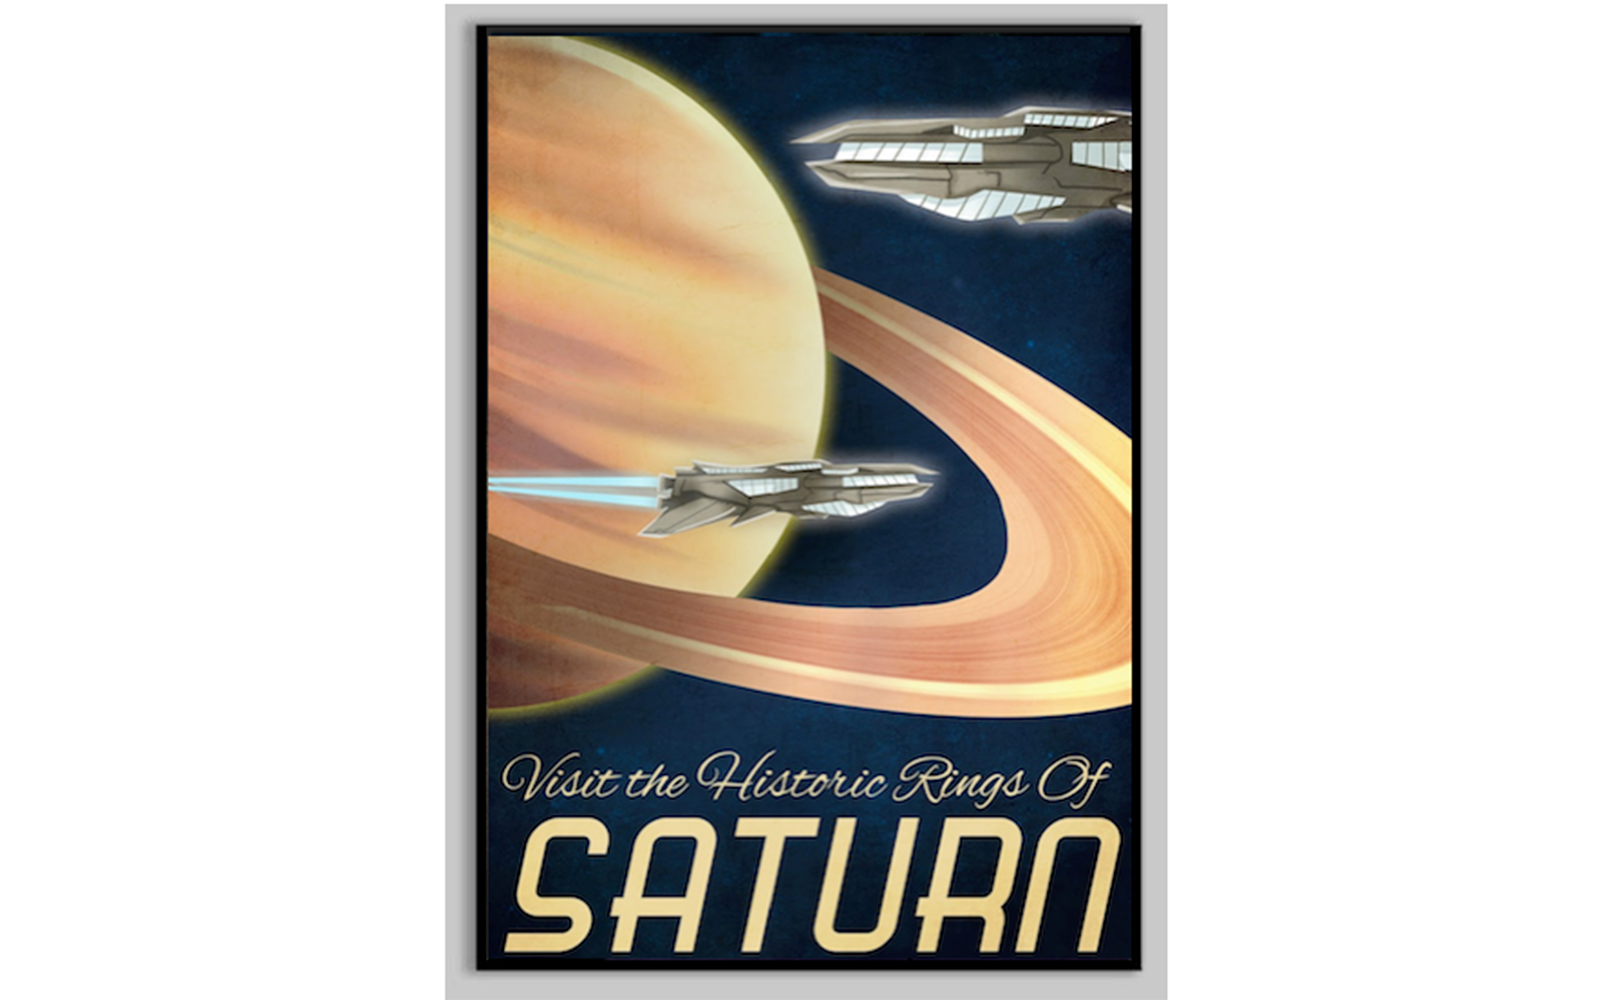 Road Trip Around the Rings of Saturn